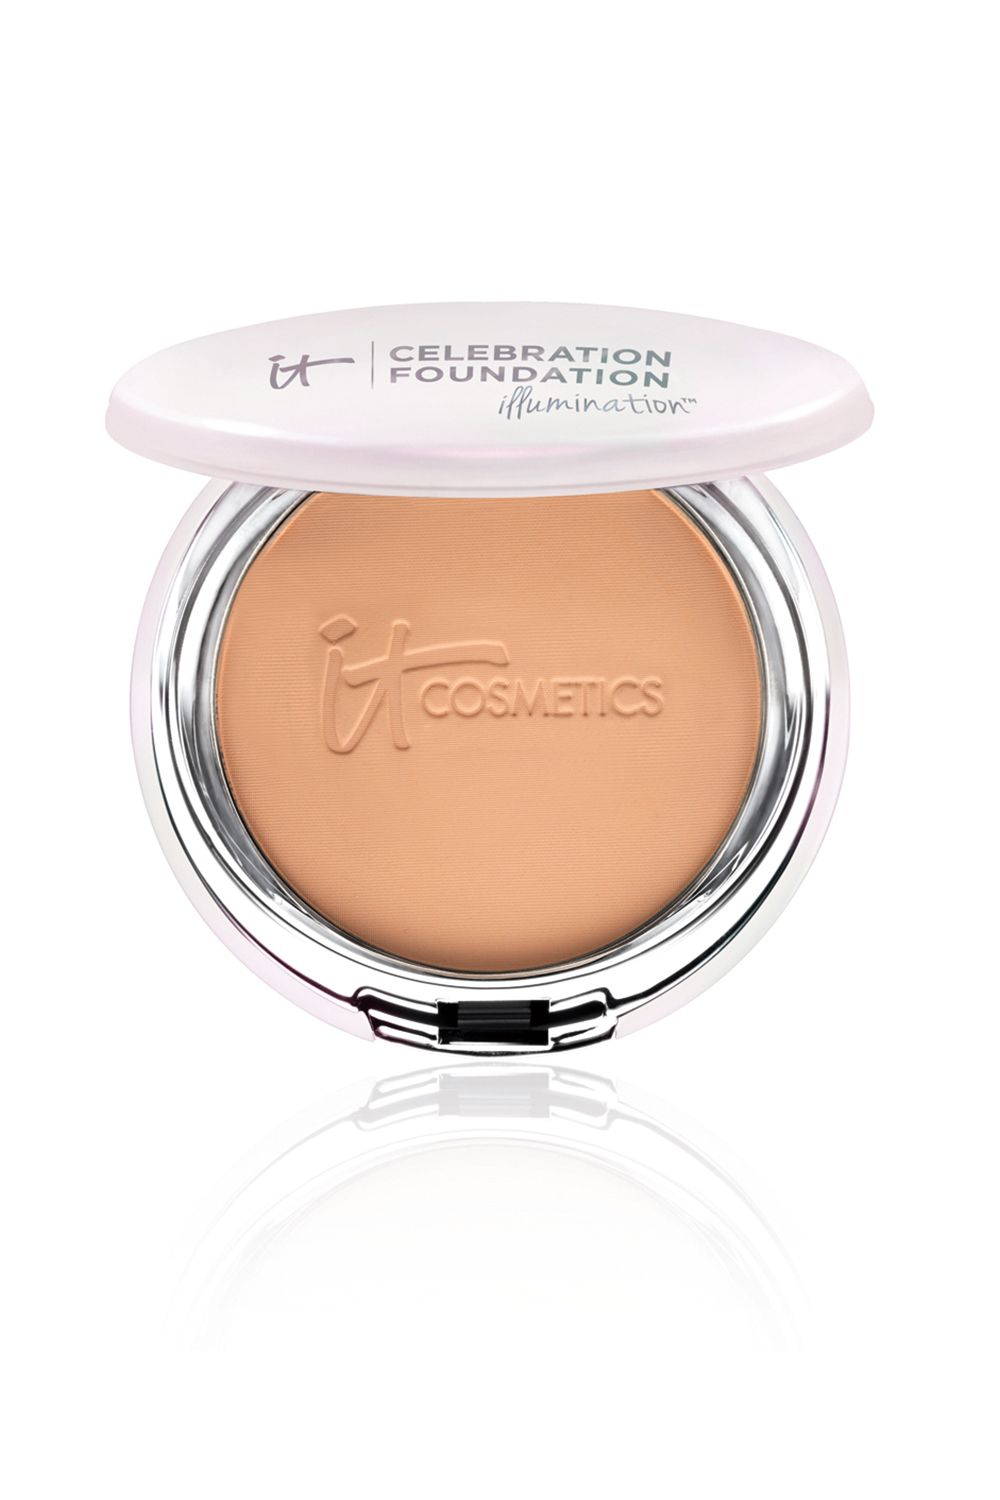 """<p>This lightweight powder is subtly iridescent (zero flecks of glitter or shimmer, here) and so insanely silky, it'll highlight dull, blah skin without sticking to dry patches.</p><p><i data-redactor-tag=""""i"""">It Cosmetics Celebration Foundation Illumination, $35</i></p><p><strong data-redactor-tag=""""strong"""">BUY IT: <a href=""""http://www.ulta.com/celebration-foundation-illumination?productId=xlsImpprod6420042"""">ulta.com</a>.</strong></p>"""